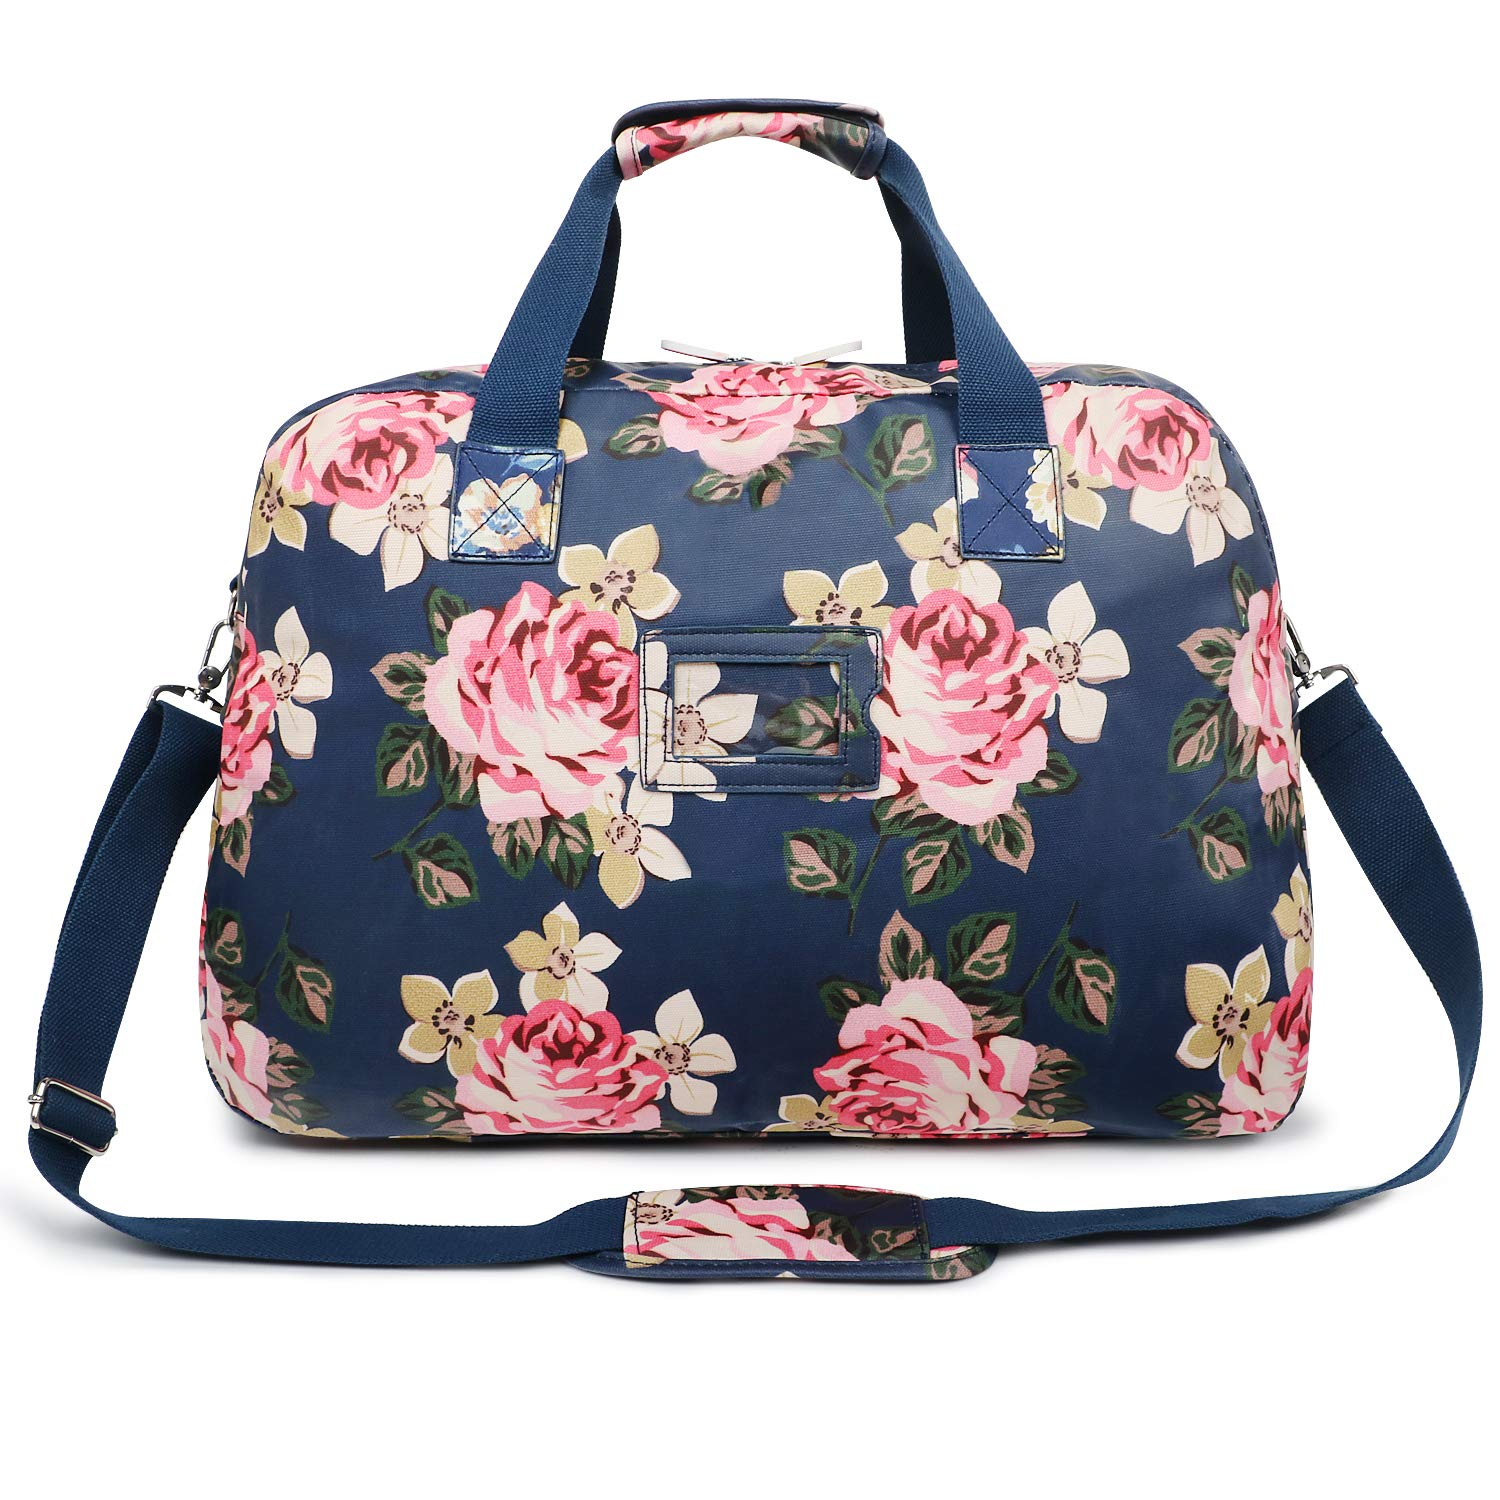 59e721dfc Amazon.com | Oflamn 29L Large Floral Duffle Bag Water Resistant Canvas  Travel Weekender Overnight Gym Bag for Women (Birthday Rose) | Travel  Duffels